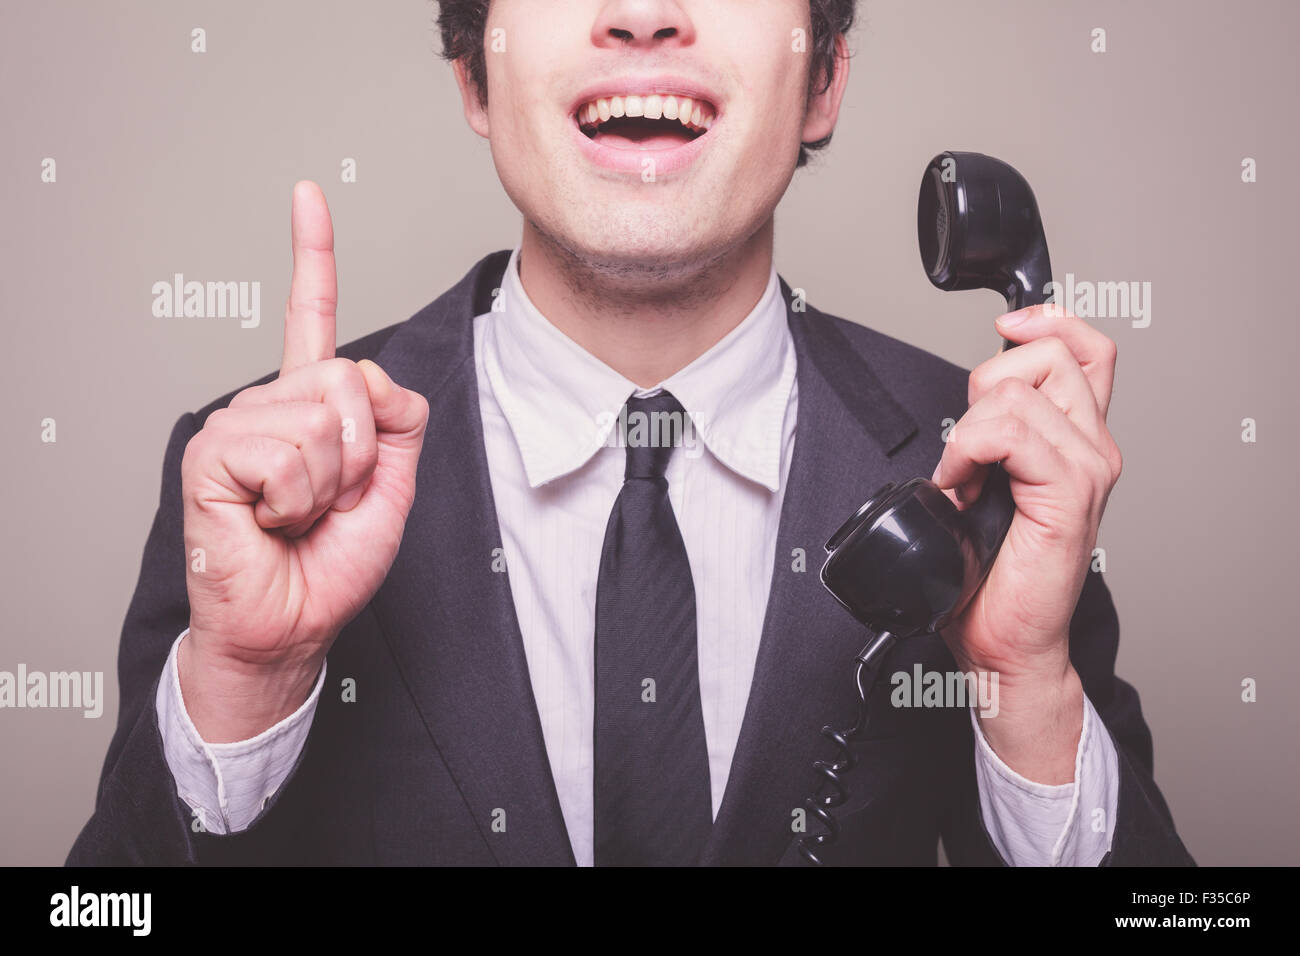 Young businessman on the phone gets a bright idea - Stock Image